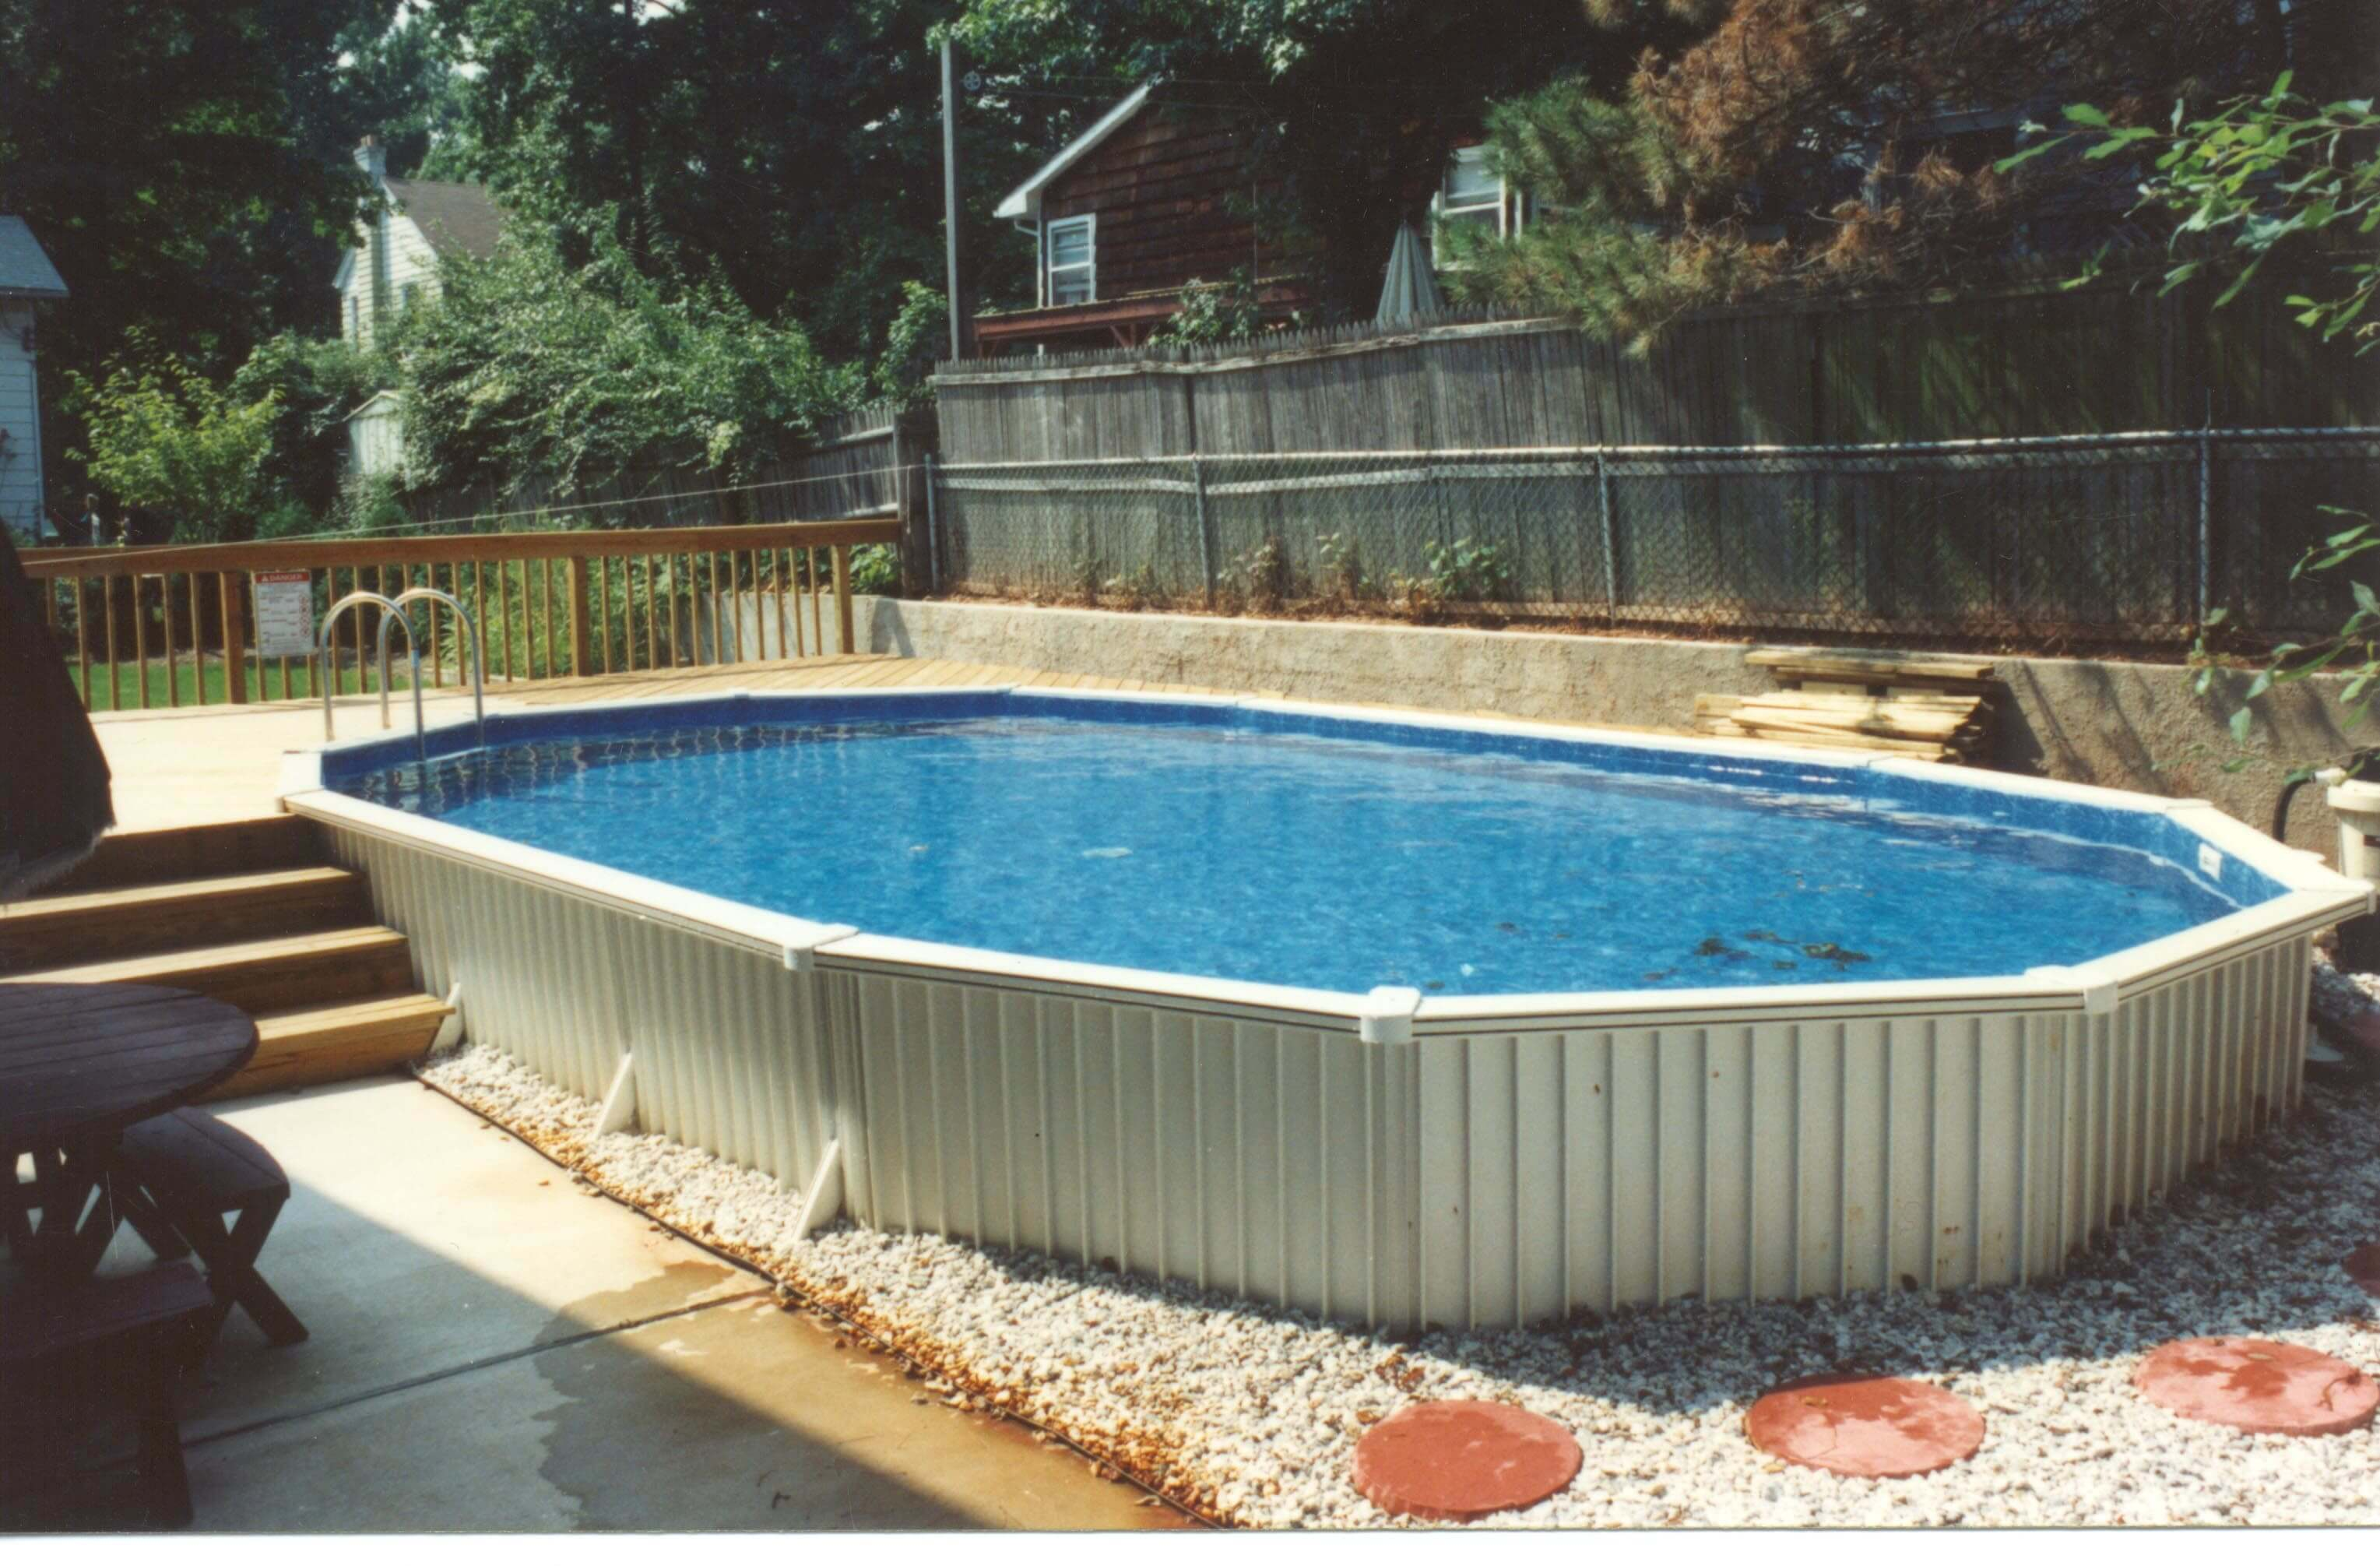 Best Rated Above Ground Pool Matching Any Design Taste